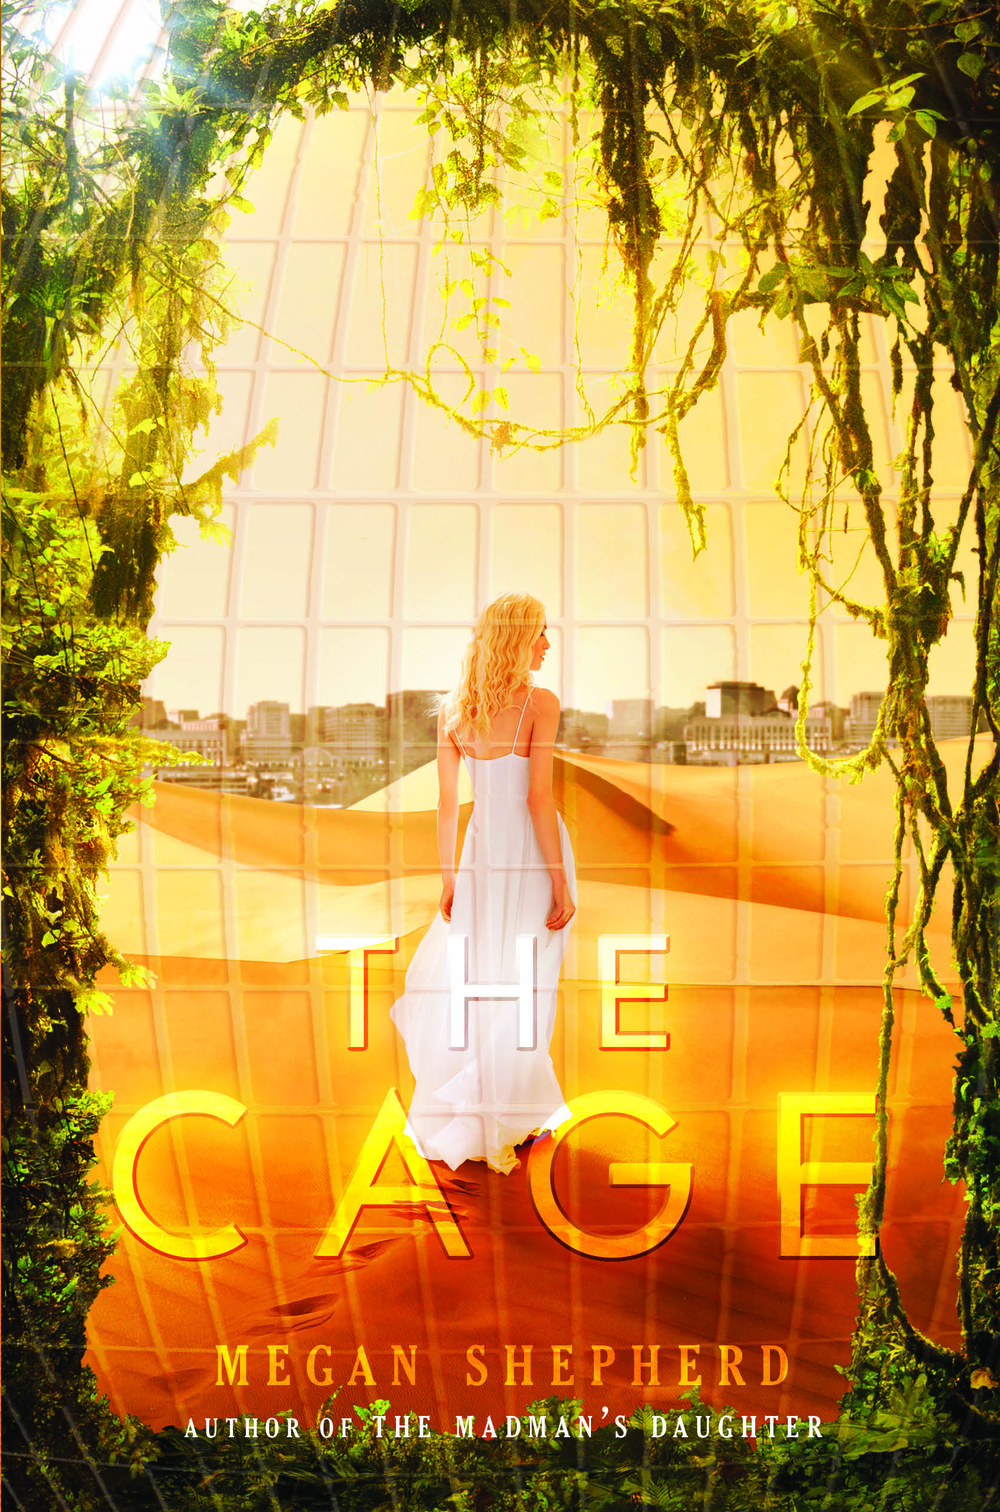 THE CAGE cover.jpg